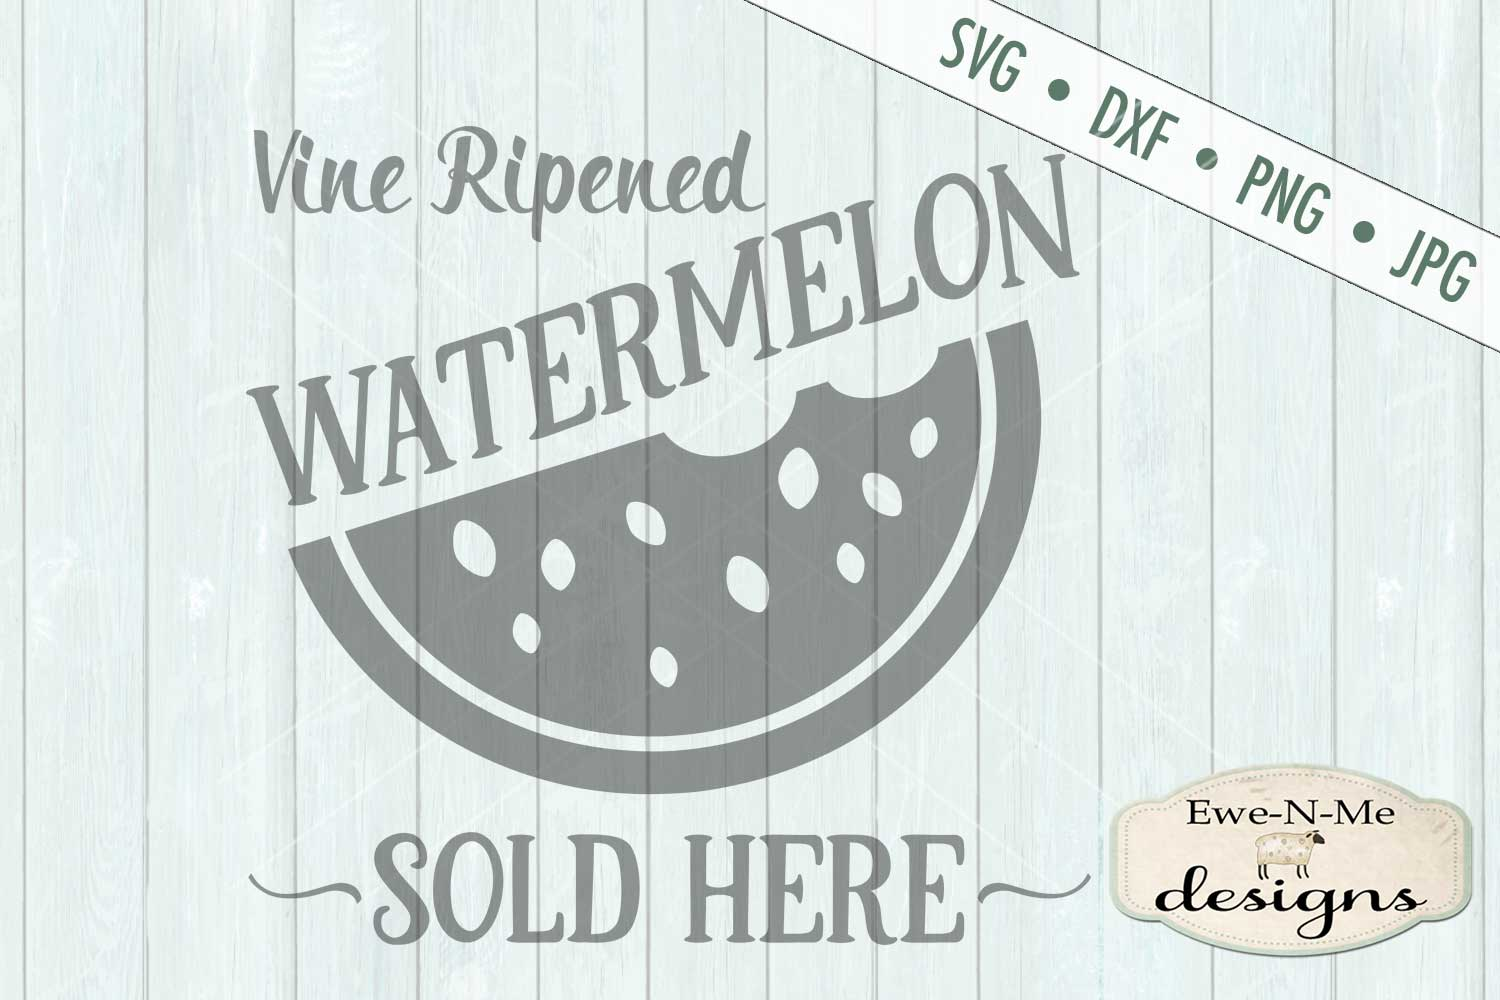 Vine Ripened Watermelon Sold Here SVG DXF Files example image 2